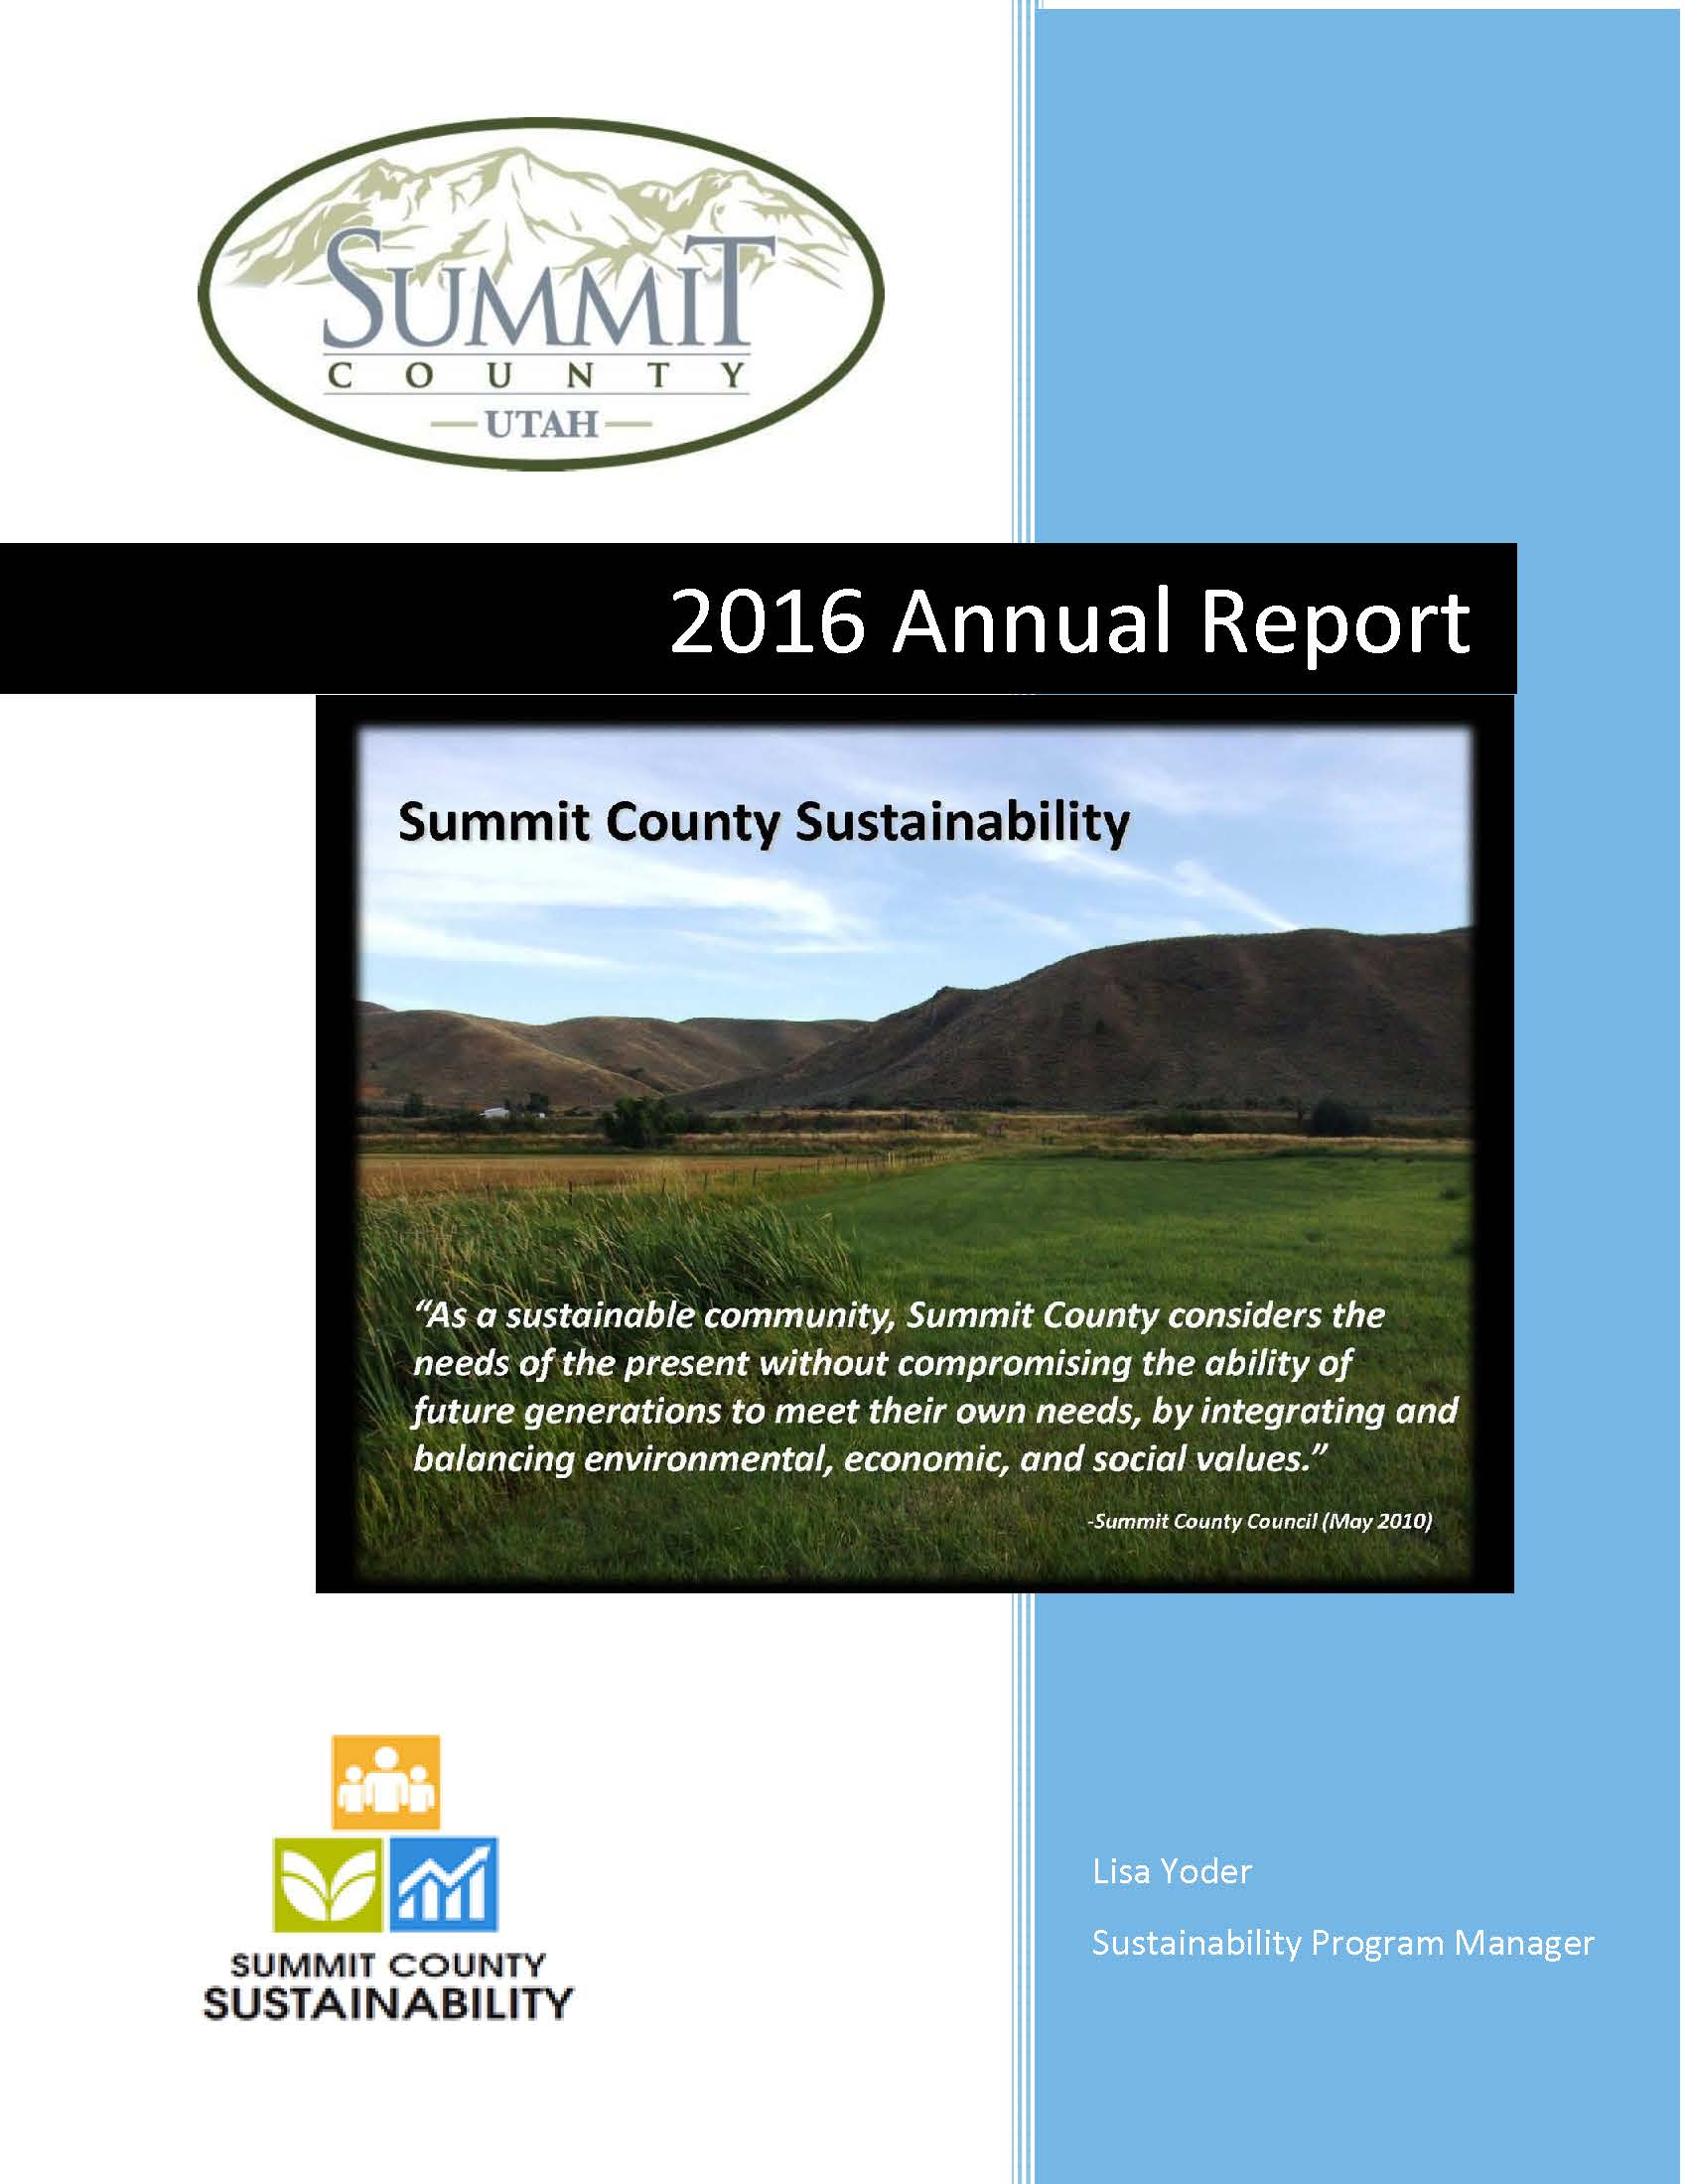 Council Packet - 2016 Sustainability Report_Page_01